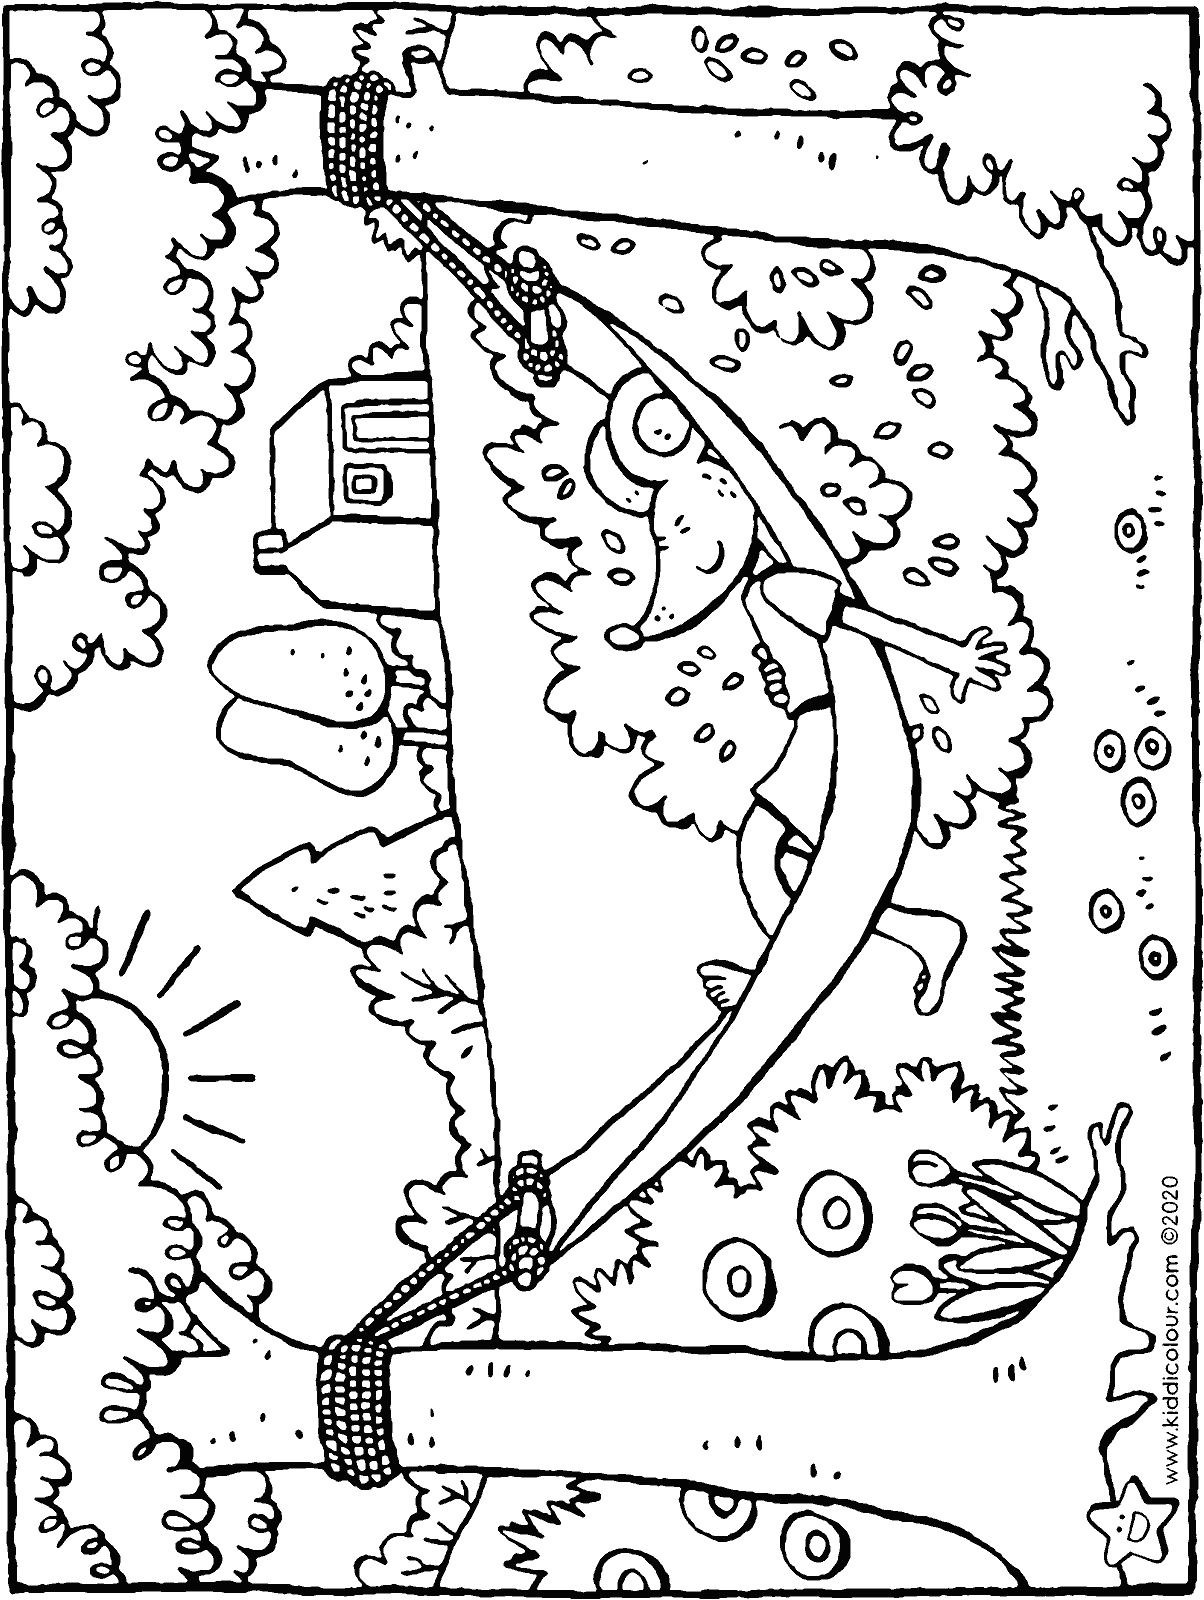 Thomas in a hammock colouring page drawing picture 01H